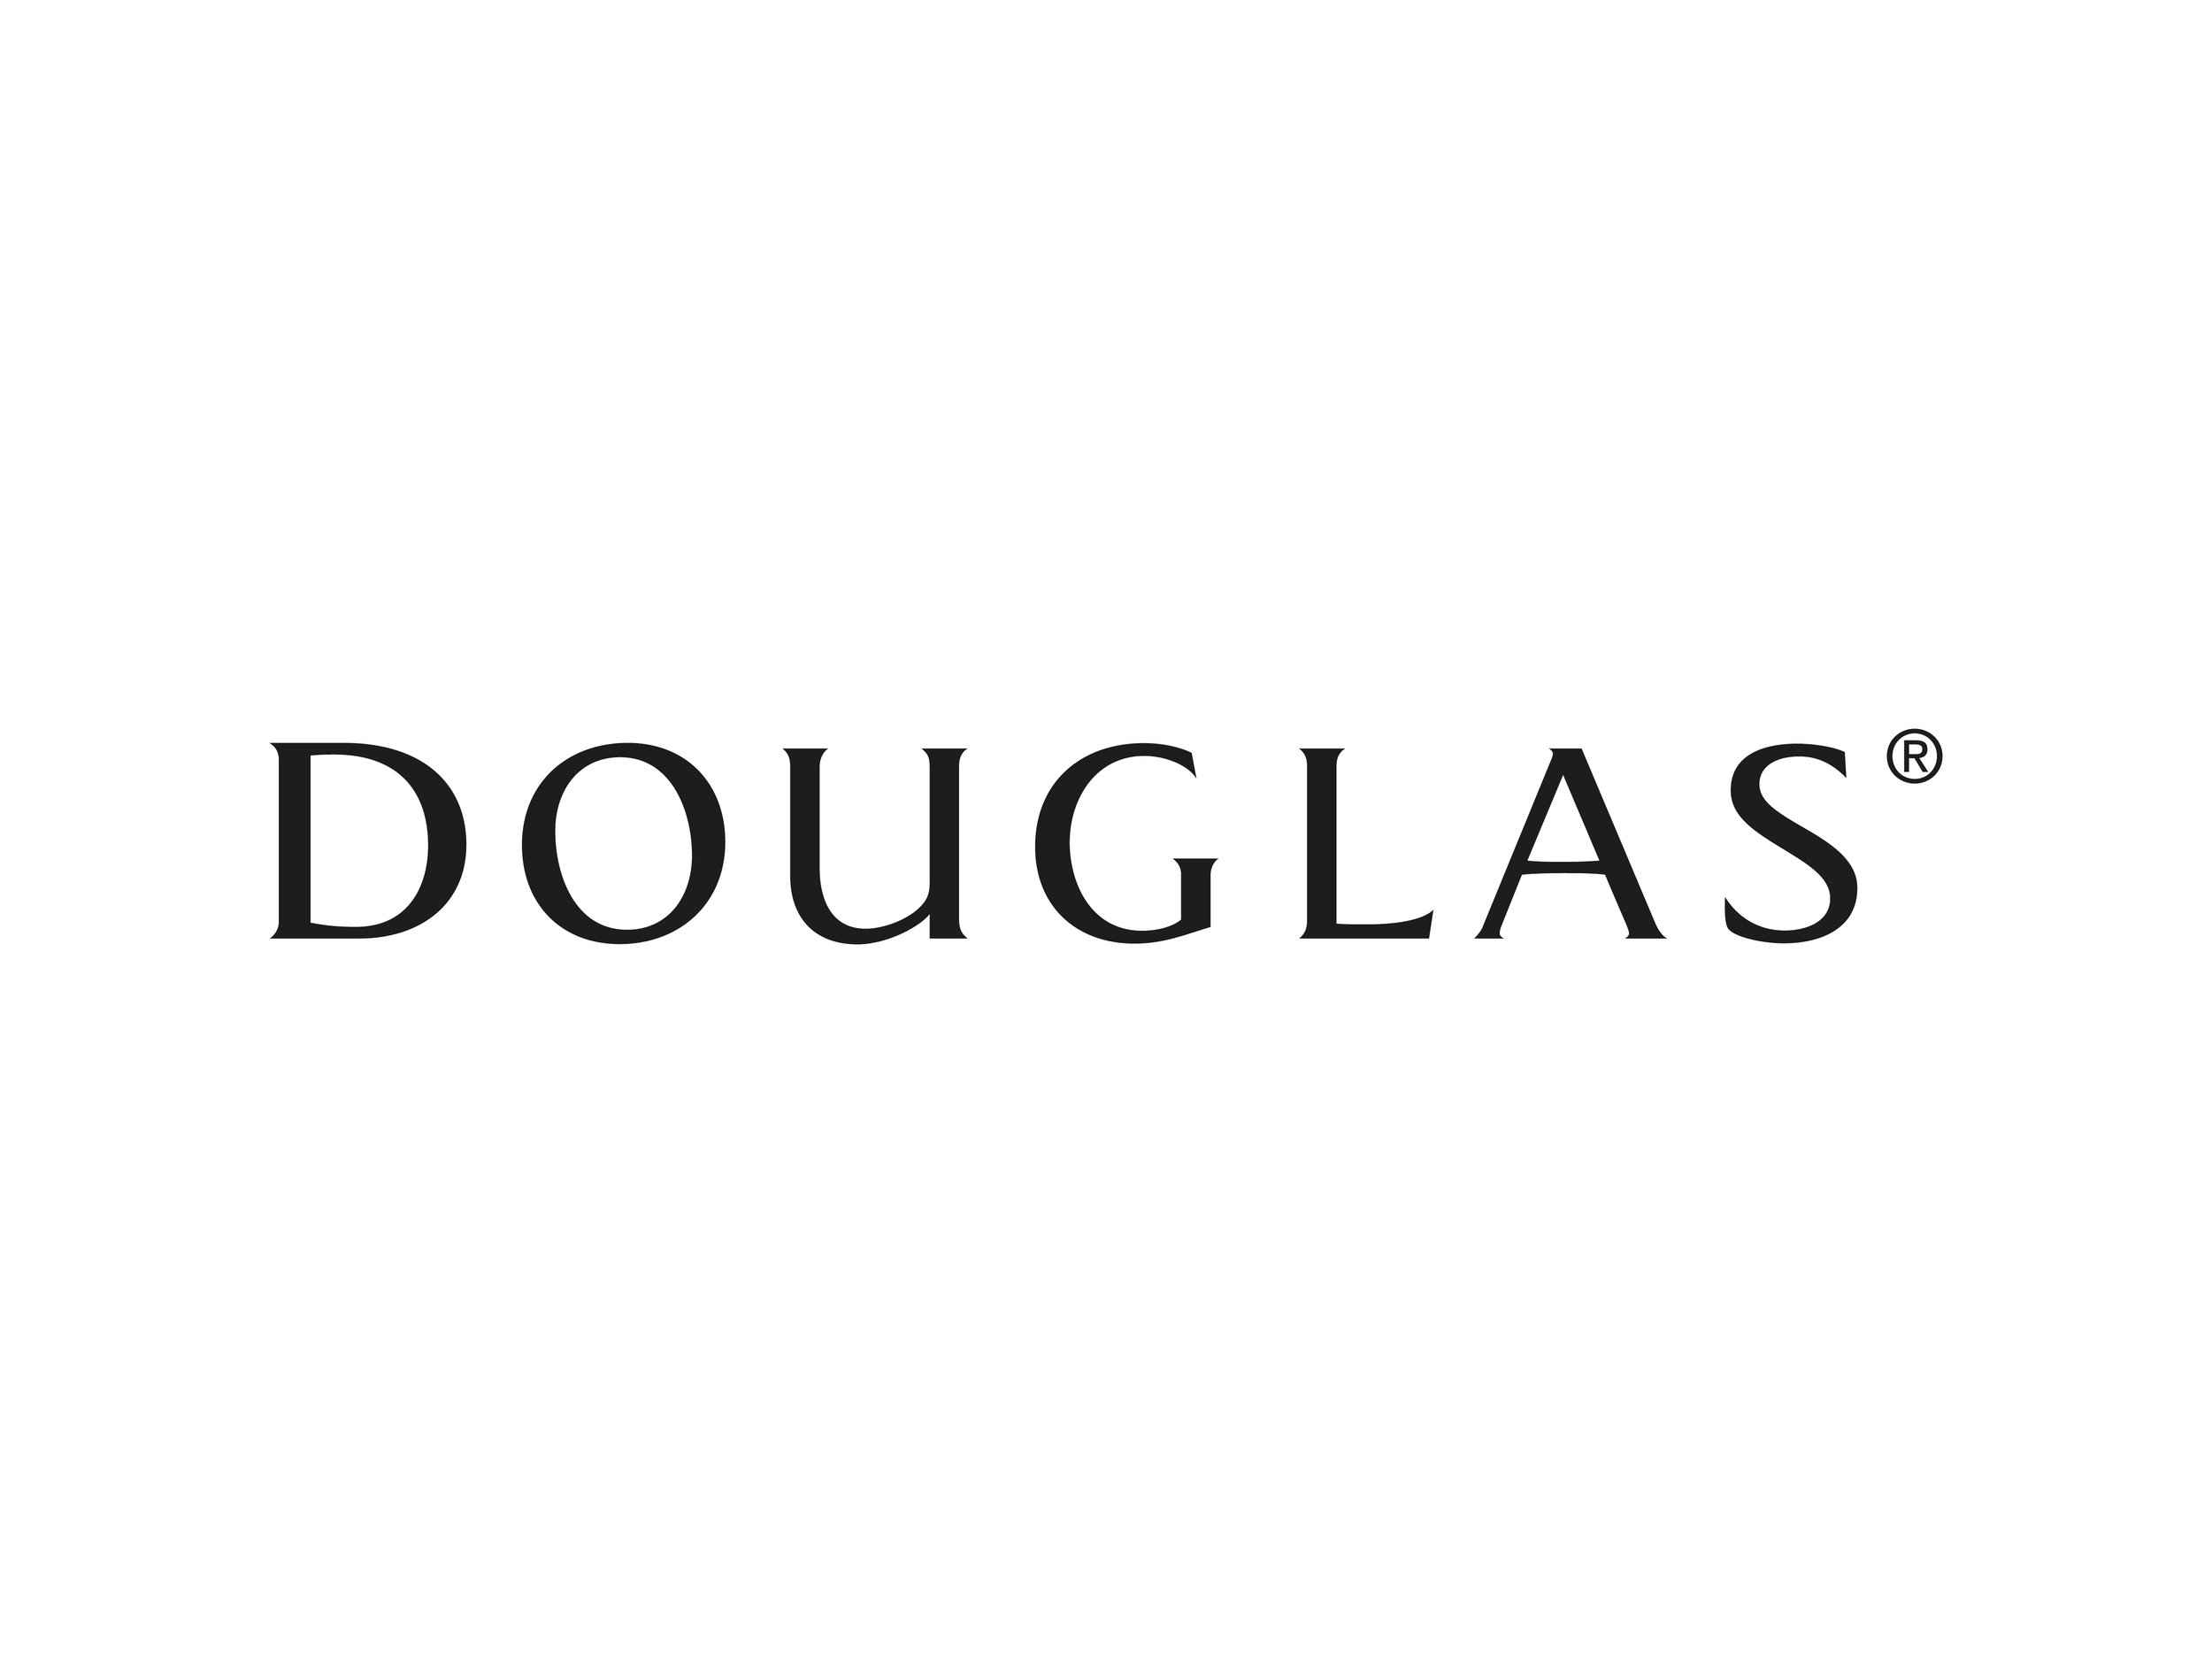 Douglas Logo Band Row2 Export.jpg